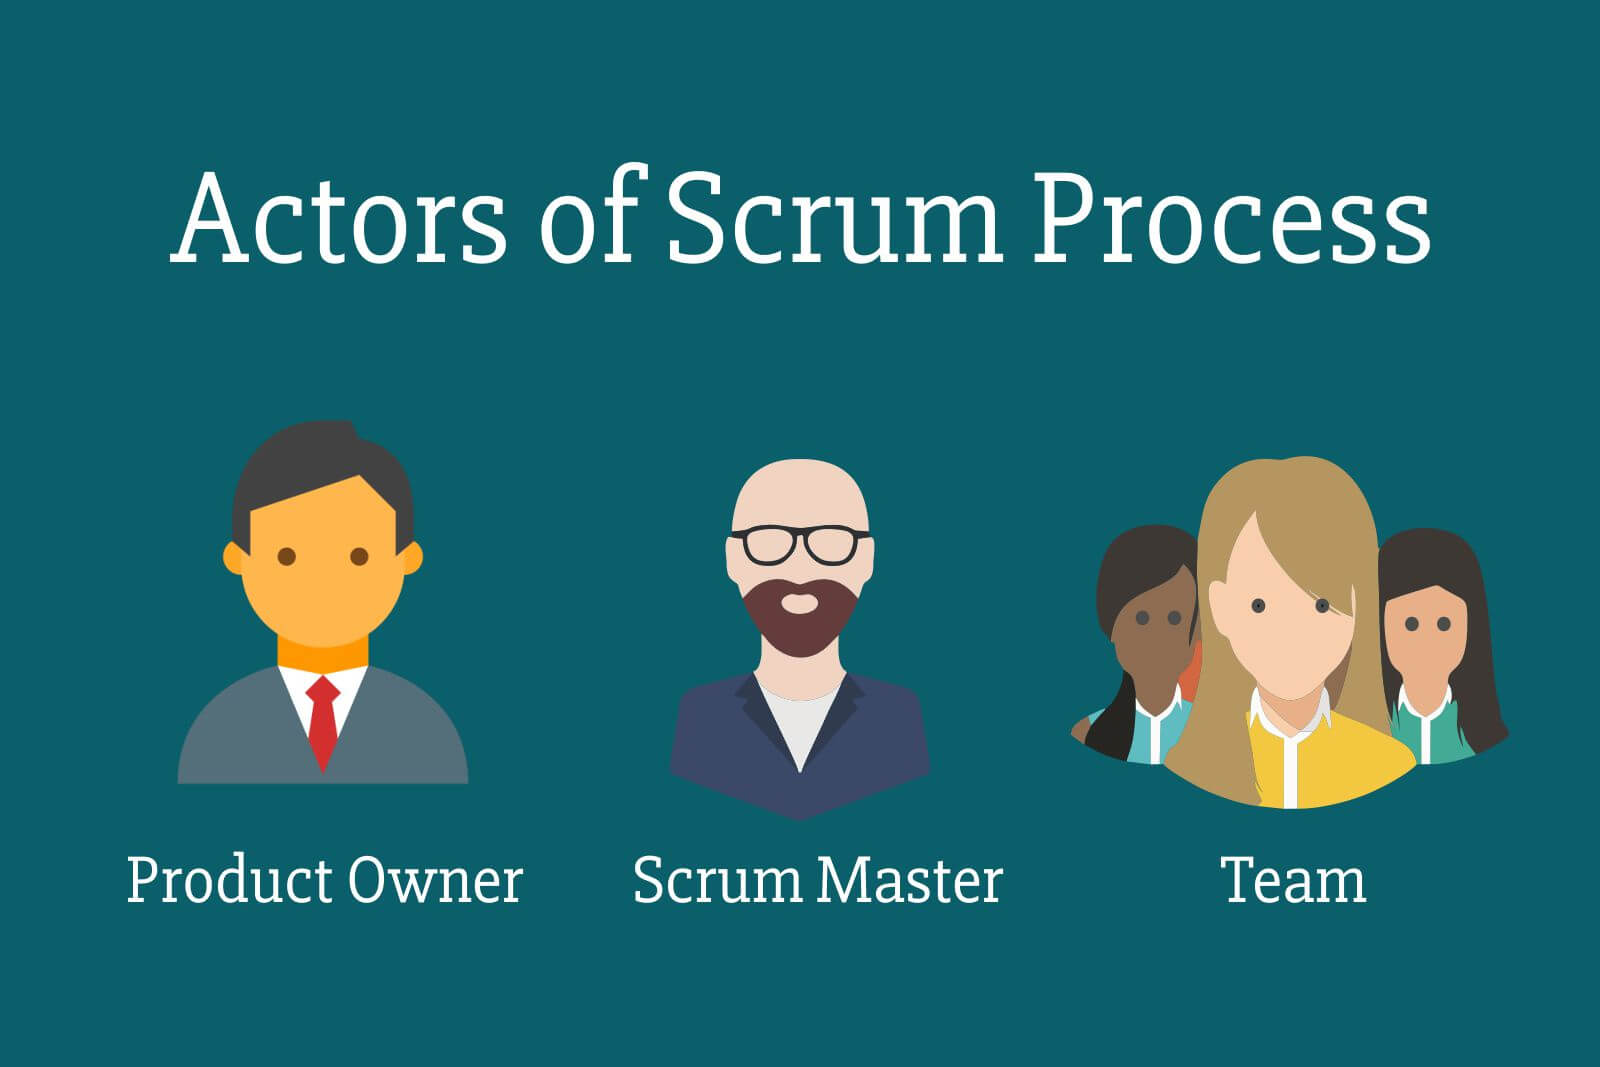 3 Main Actors of a Scrum Process